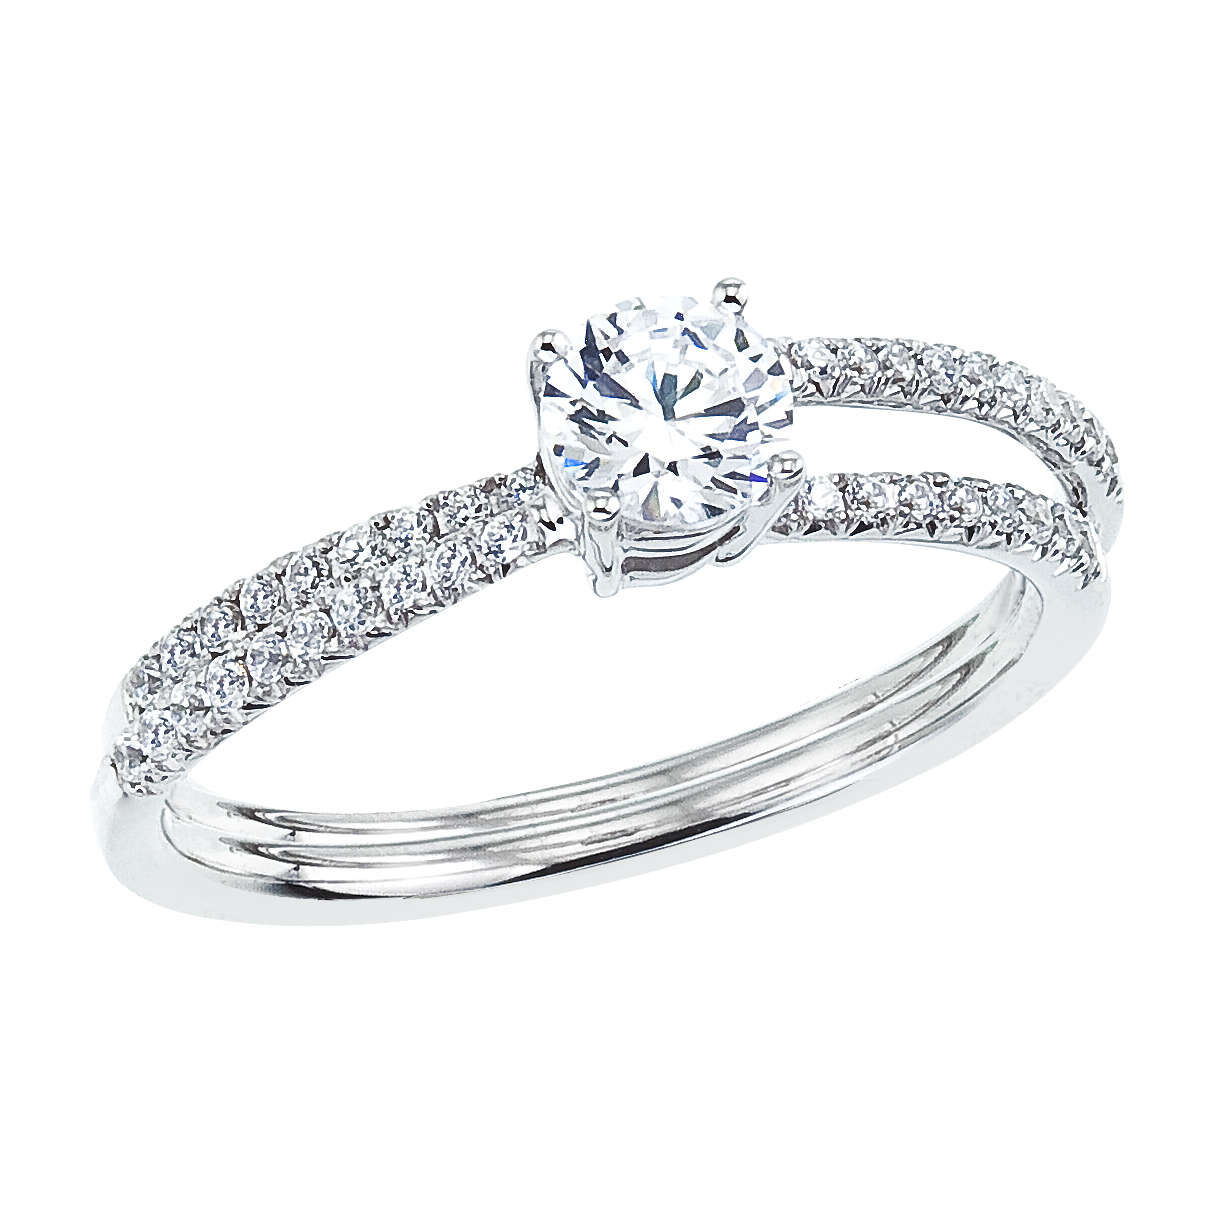 14k White gold Crossover Diamond QPID Engagement Ring (0.55 tcw)